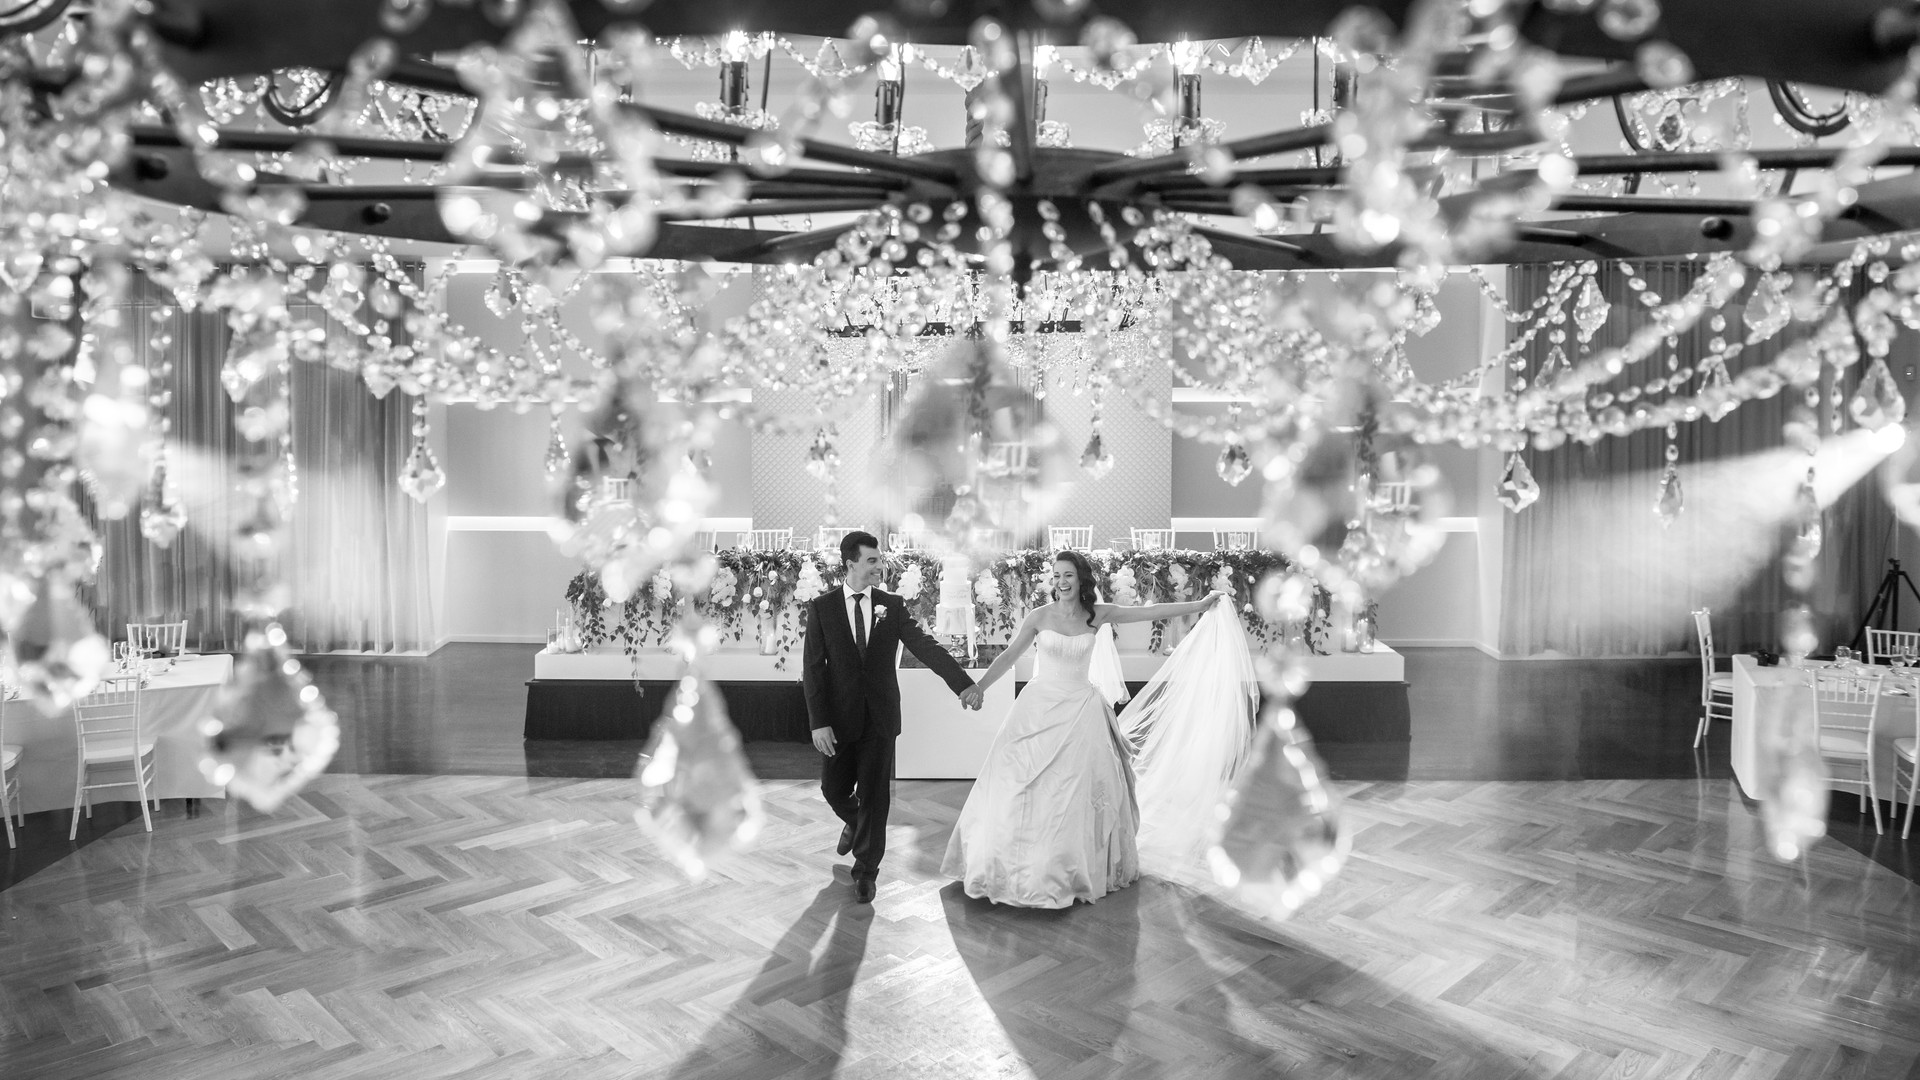 Chandalier | Meadowbank Estate | Wedding Venue | Campbellfield